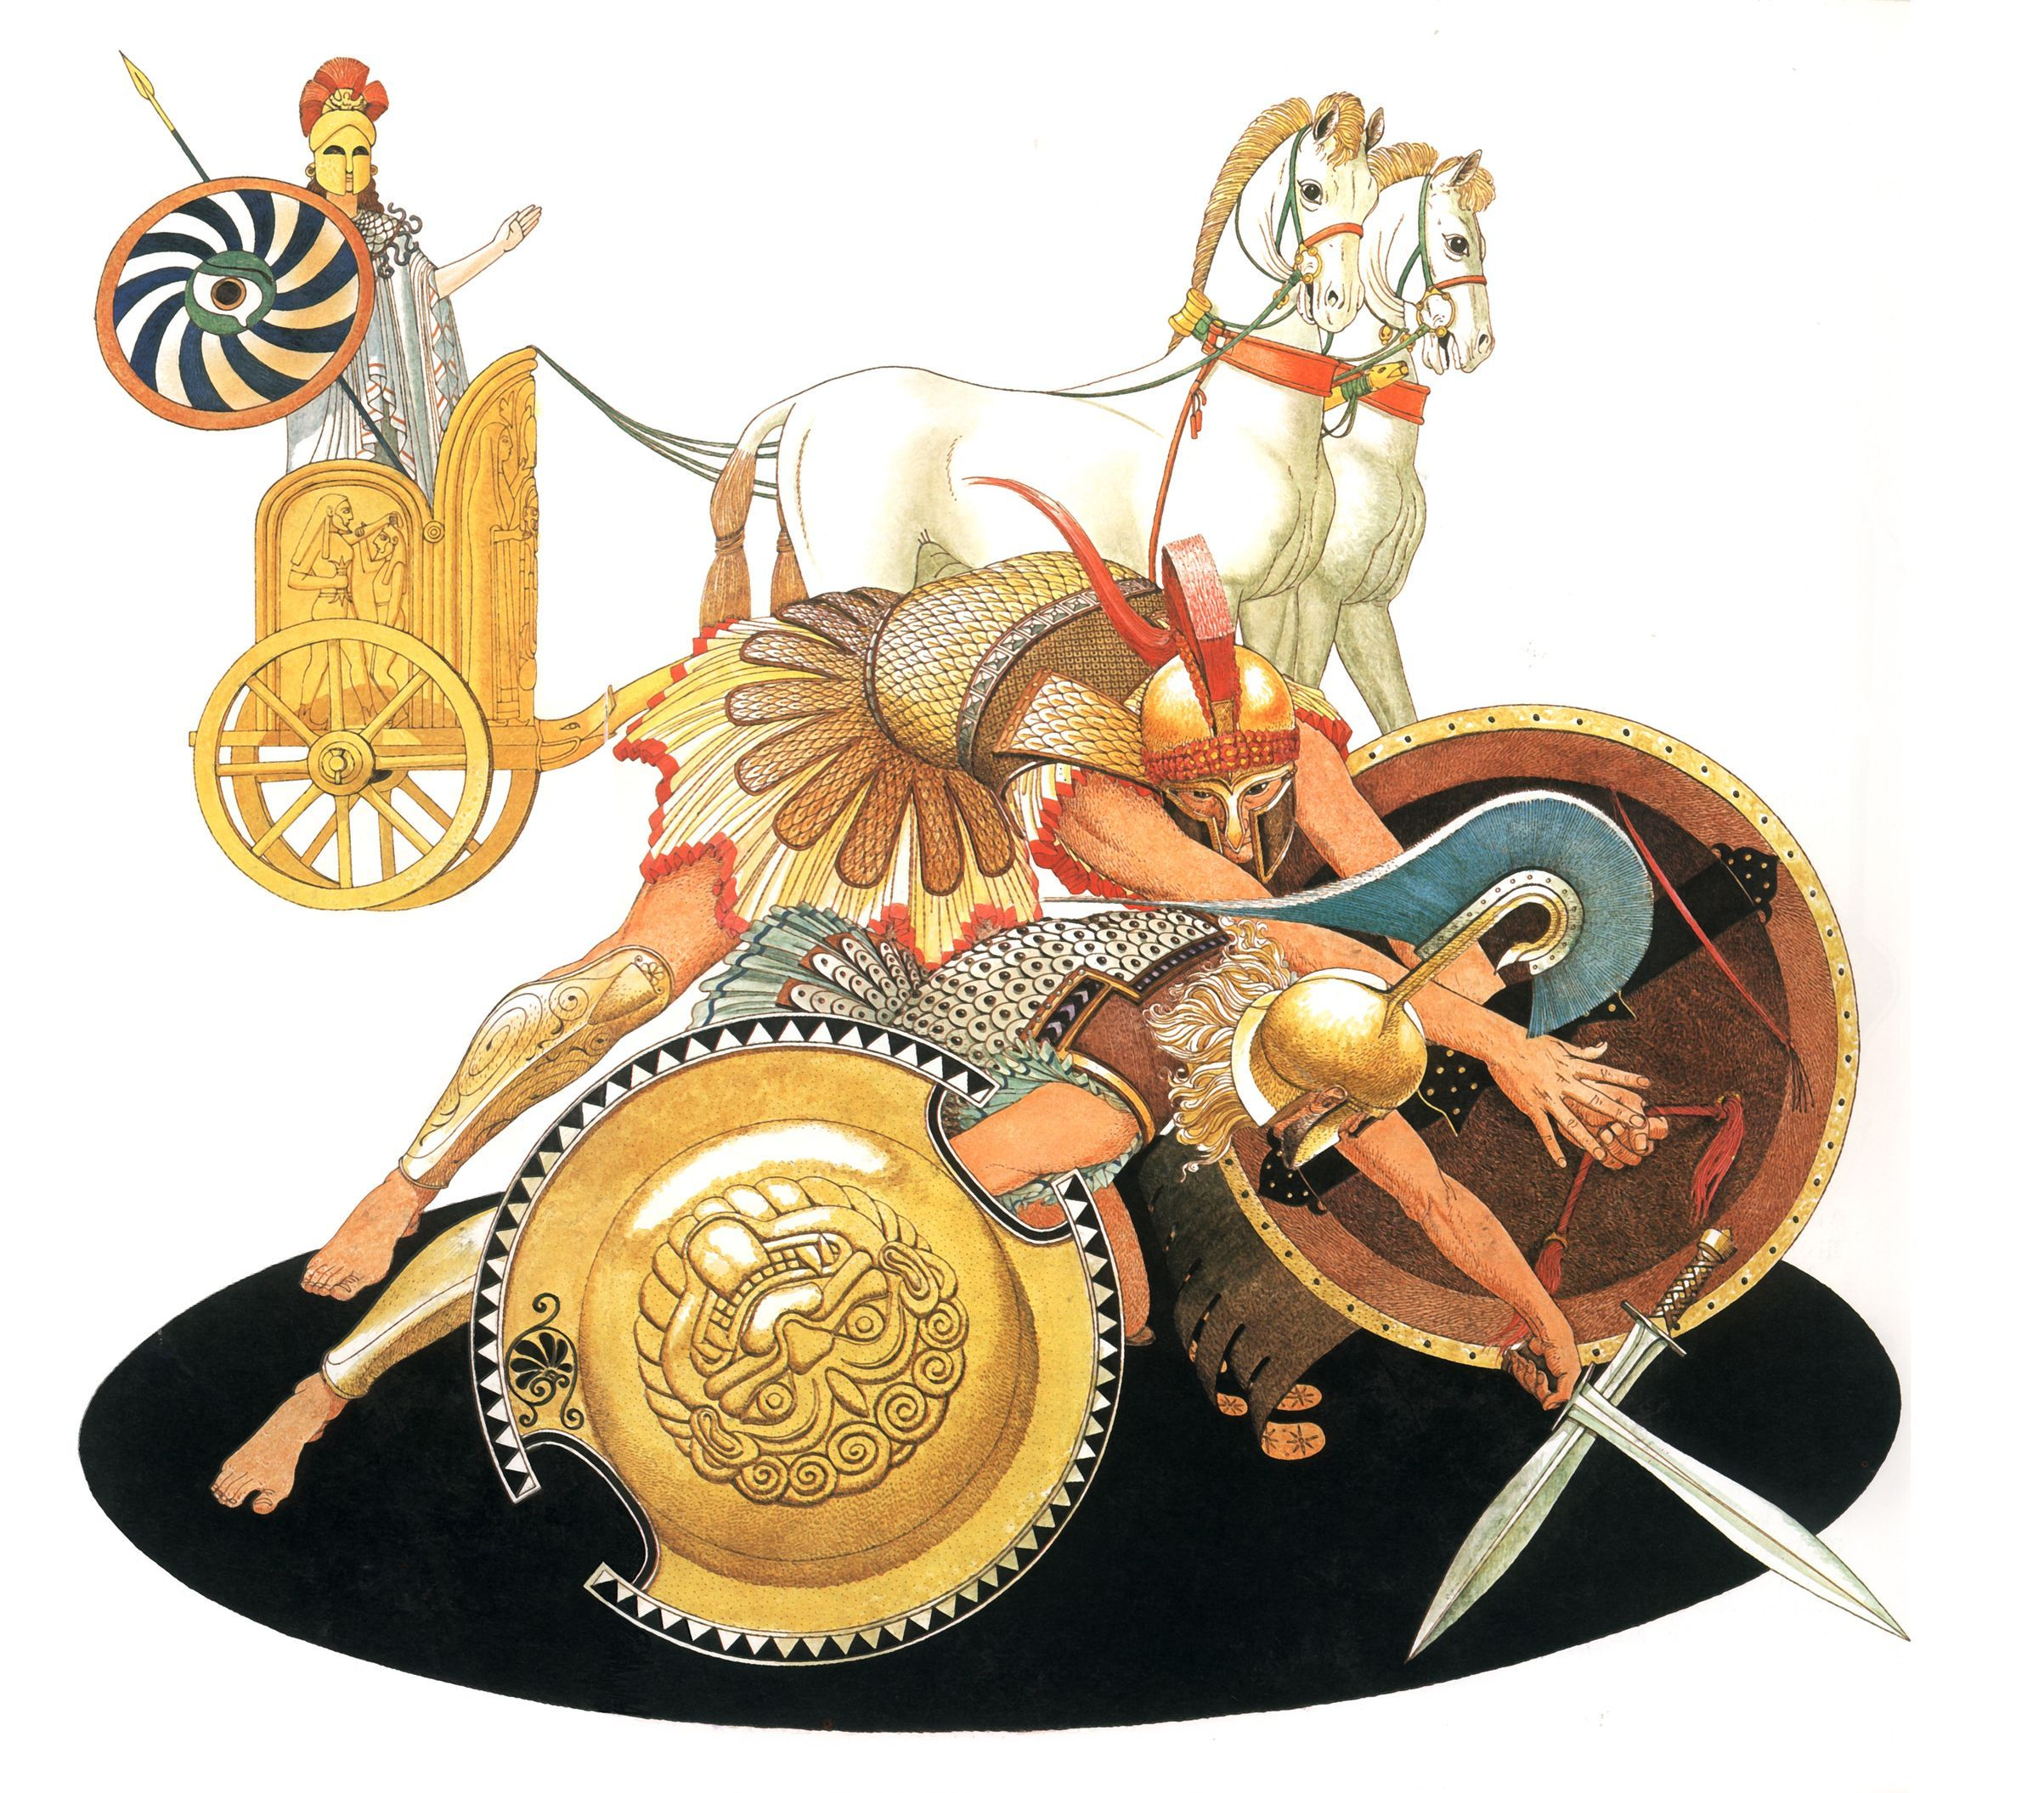 Athena and Diomedes in the Iliad vs. Ares